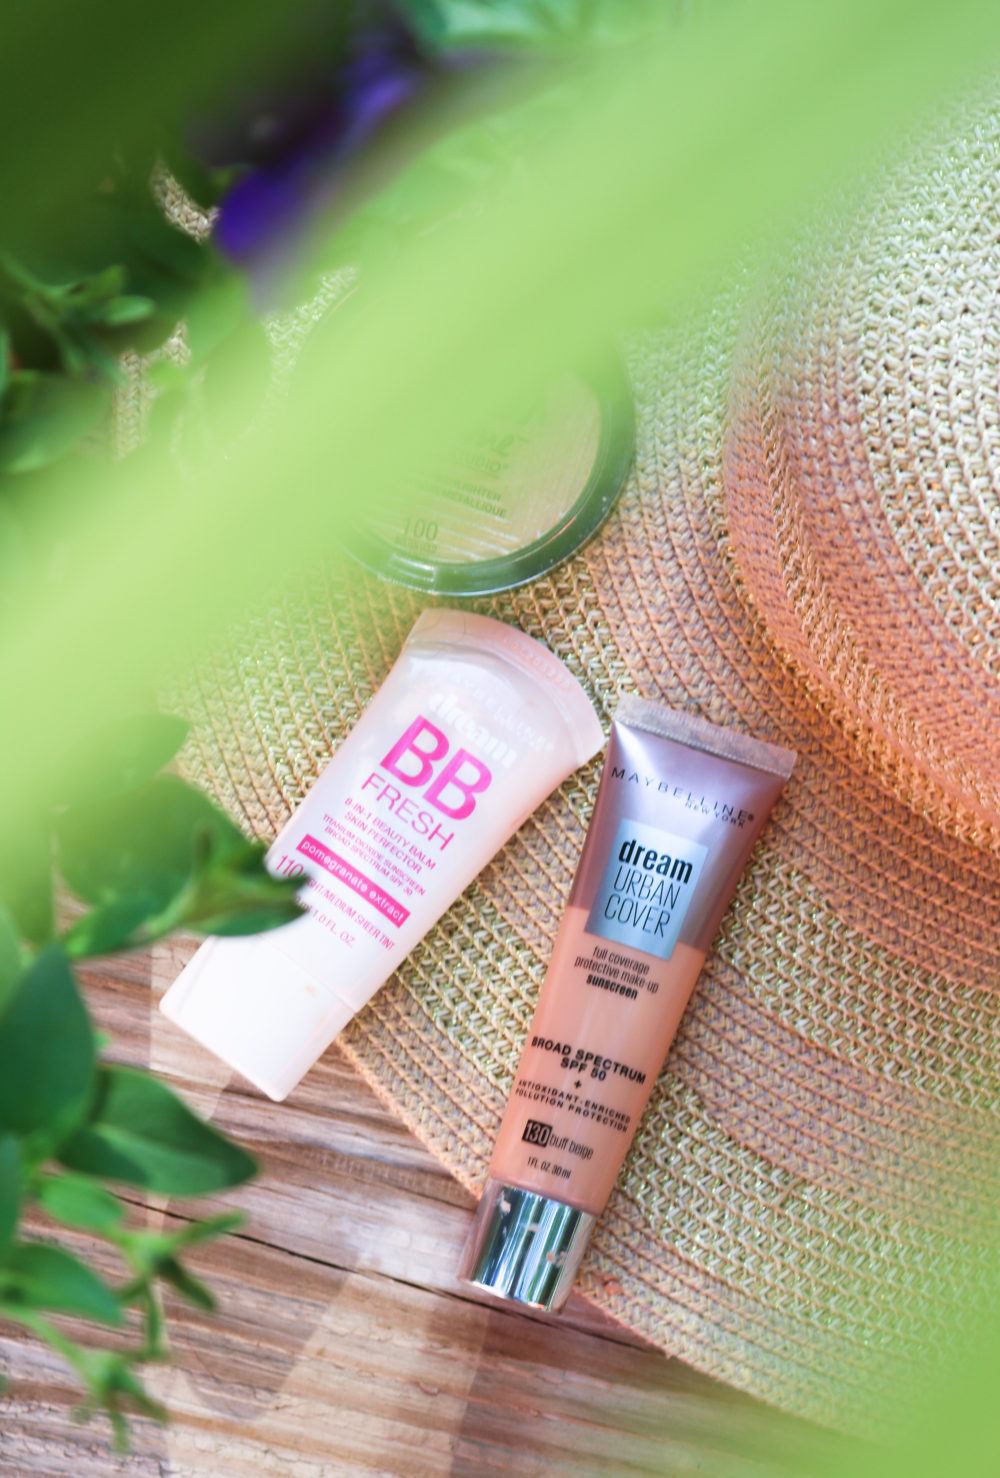 Maybelline Urban Cover Foundation Review I Is it an IT Cosmetics Dupe?? #DrugstoreMakeup #MakeupDupes #SummerMakeup